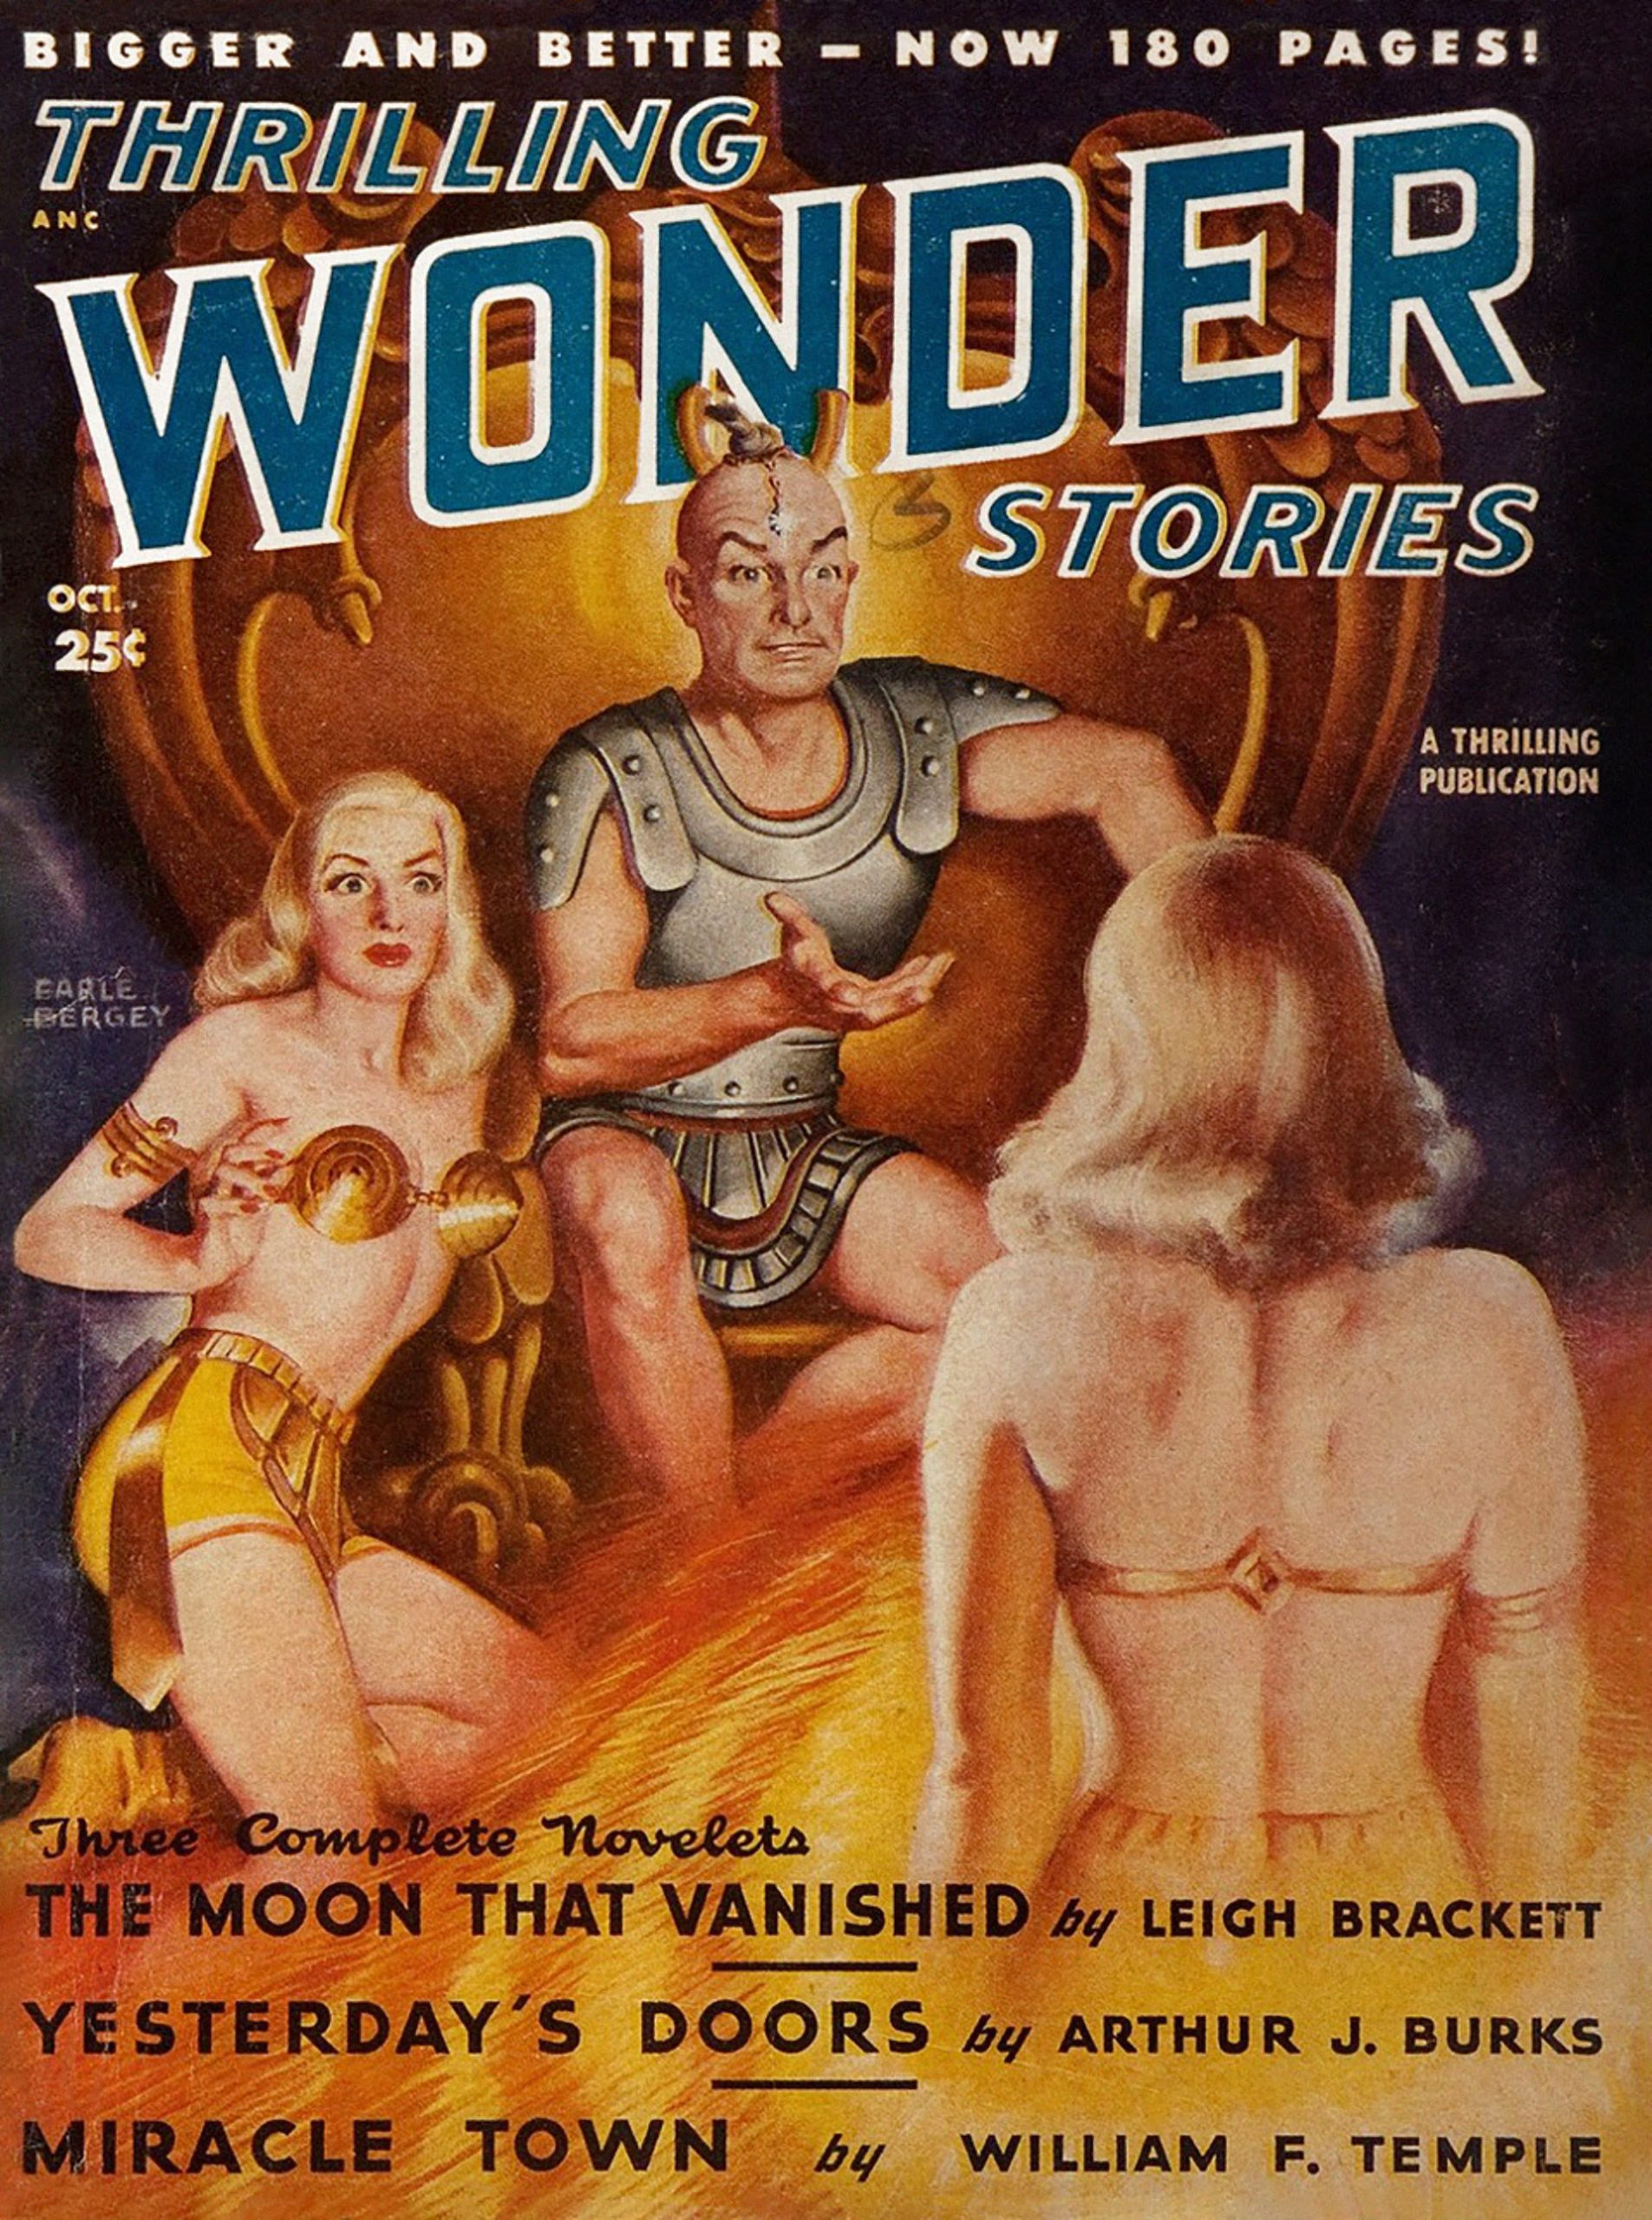 Scantily-clad space girl confronts her double on the October 1948 cover of Thrilling Wonder Stories, painted by Earle Bergey.